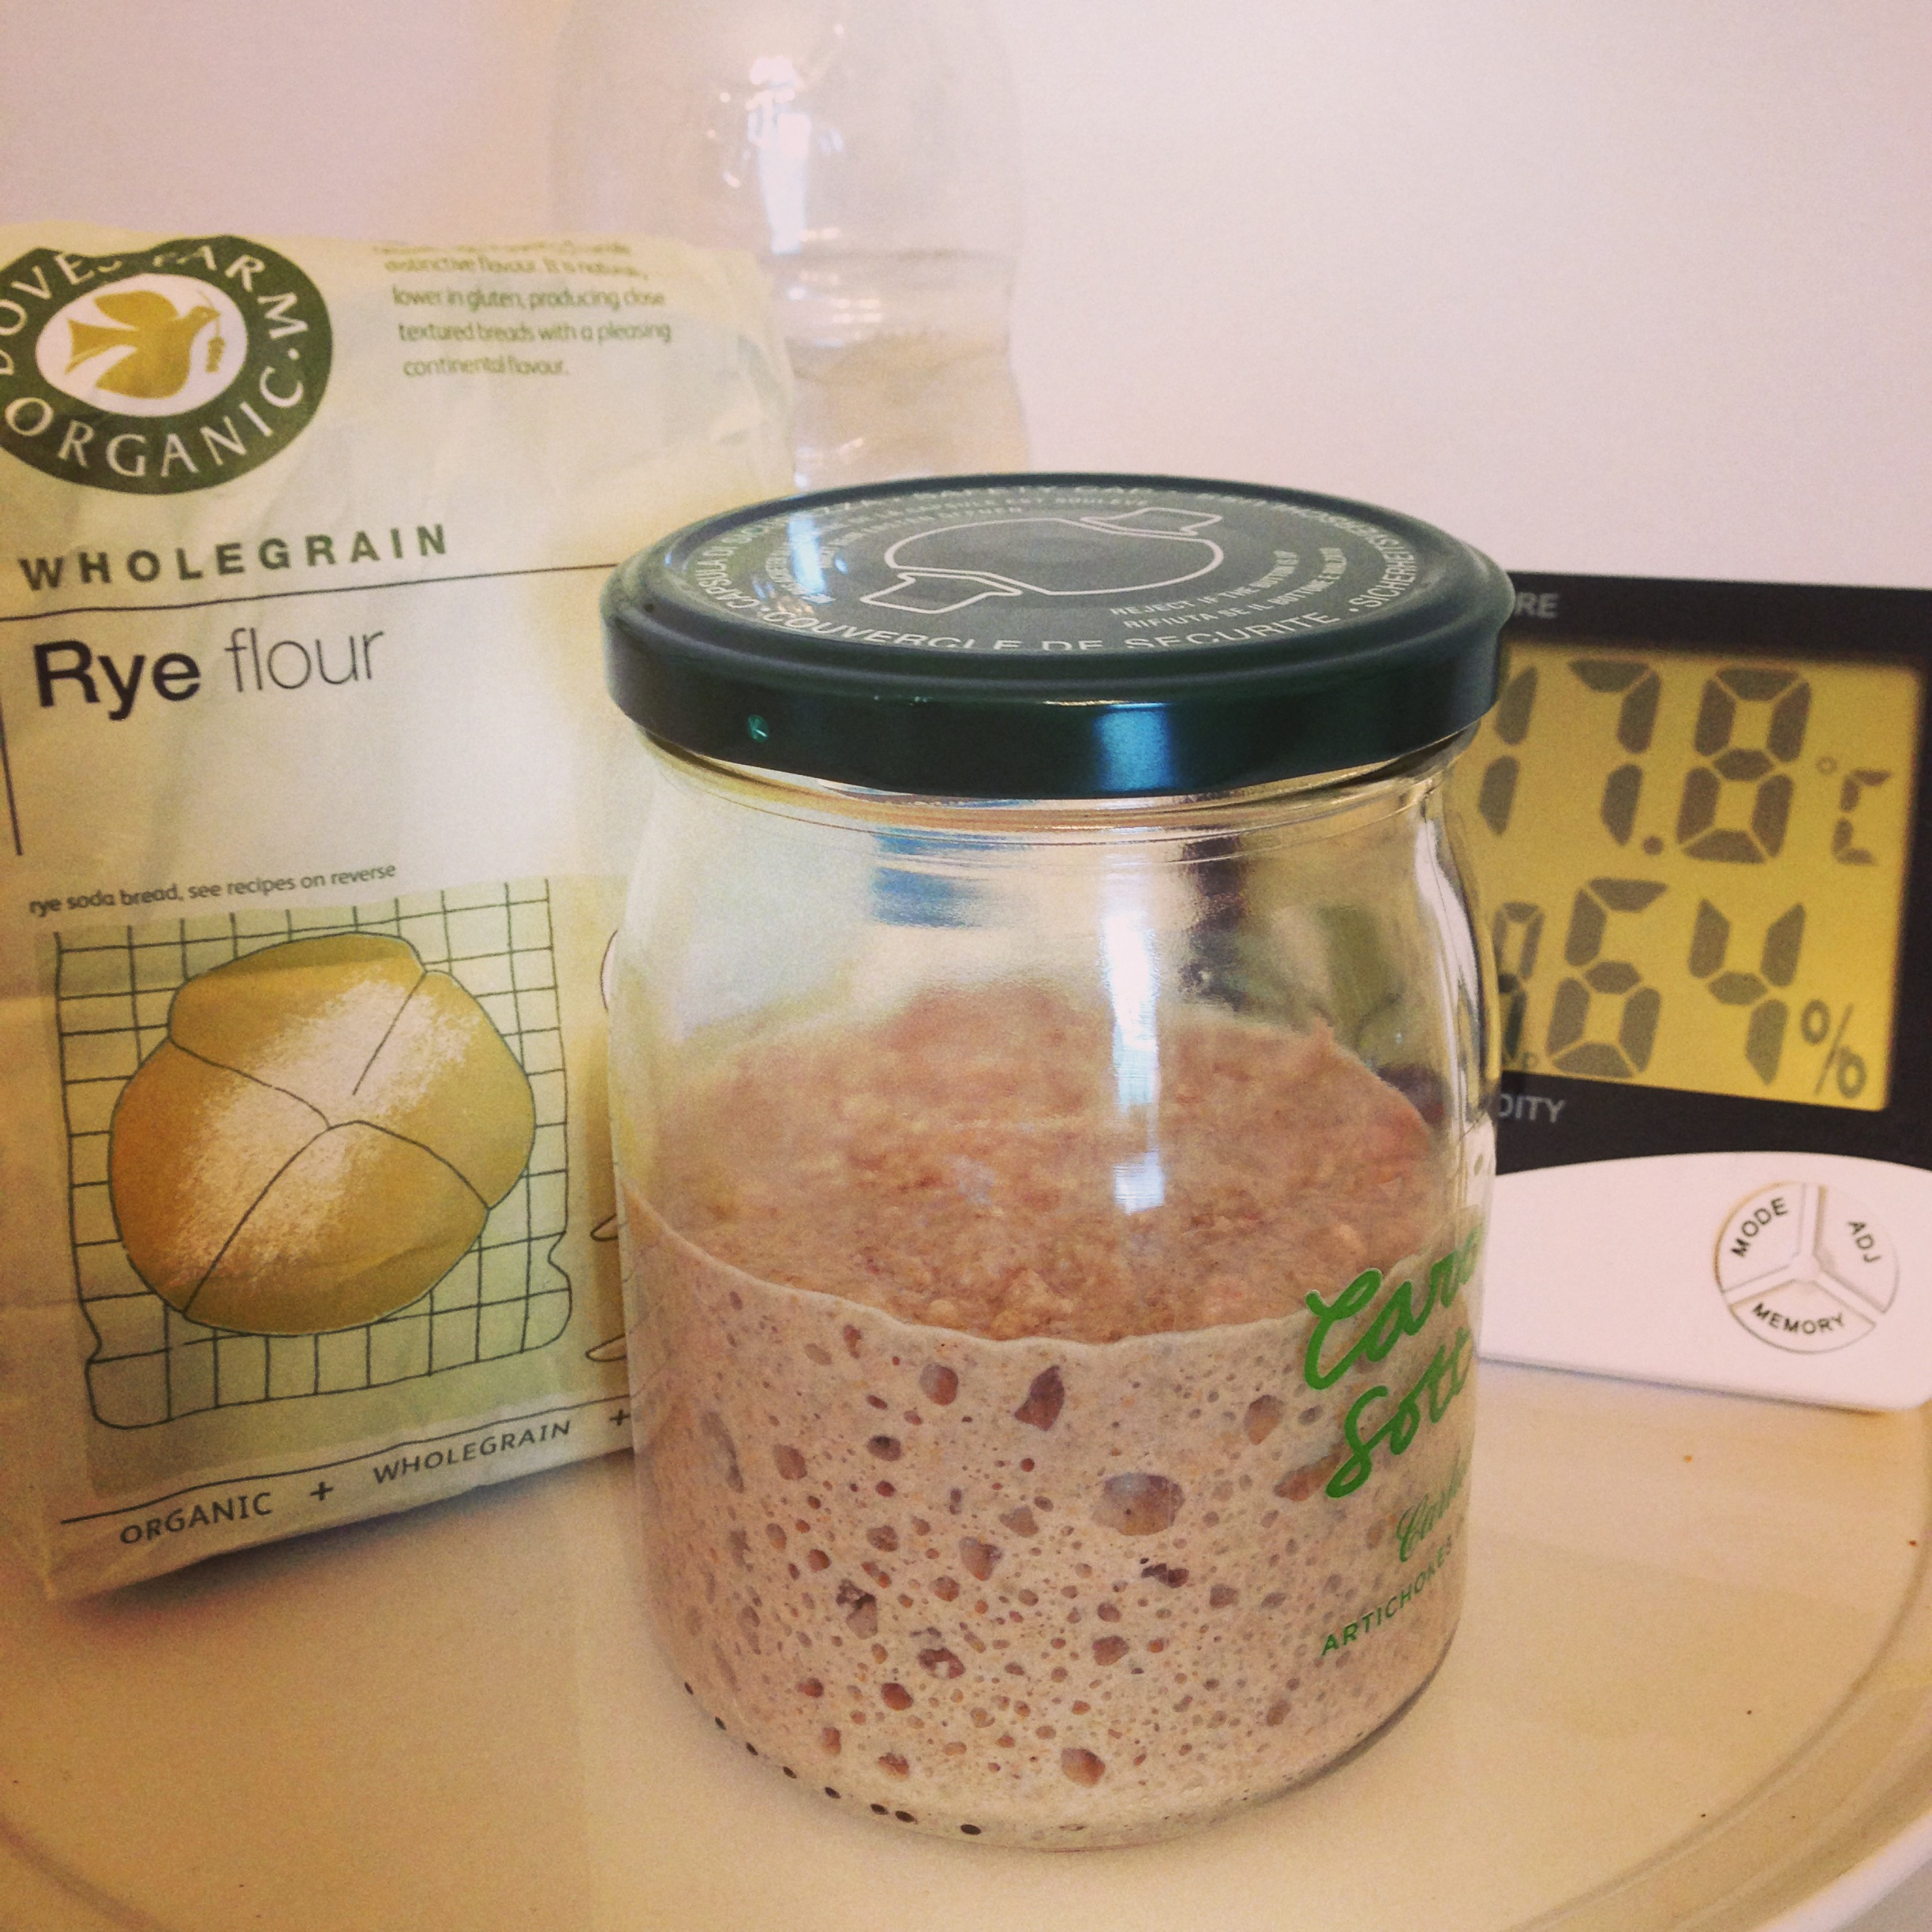 Life (and yeast!) Begins…